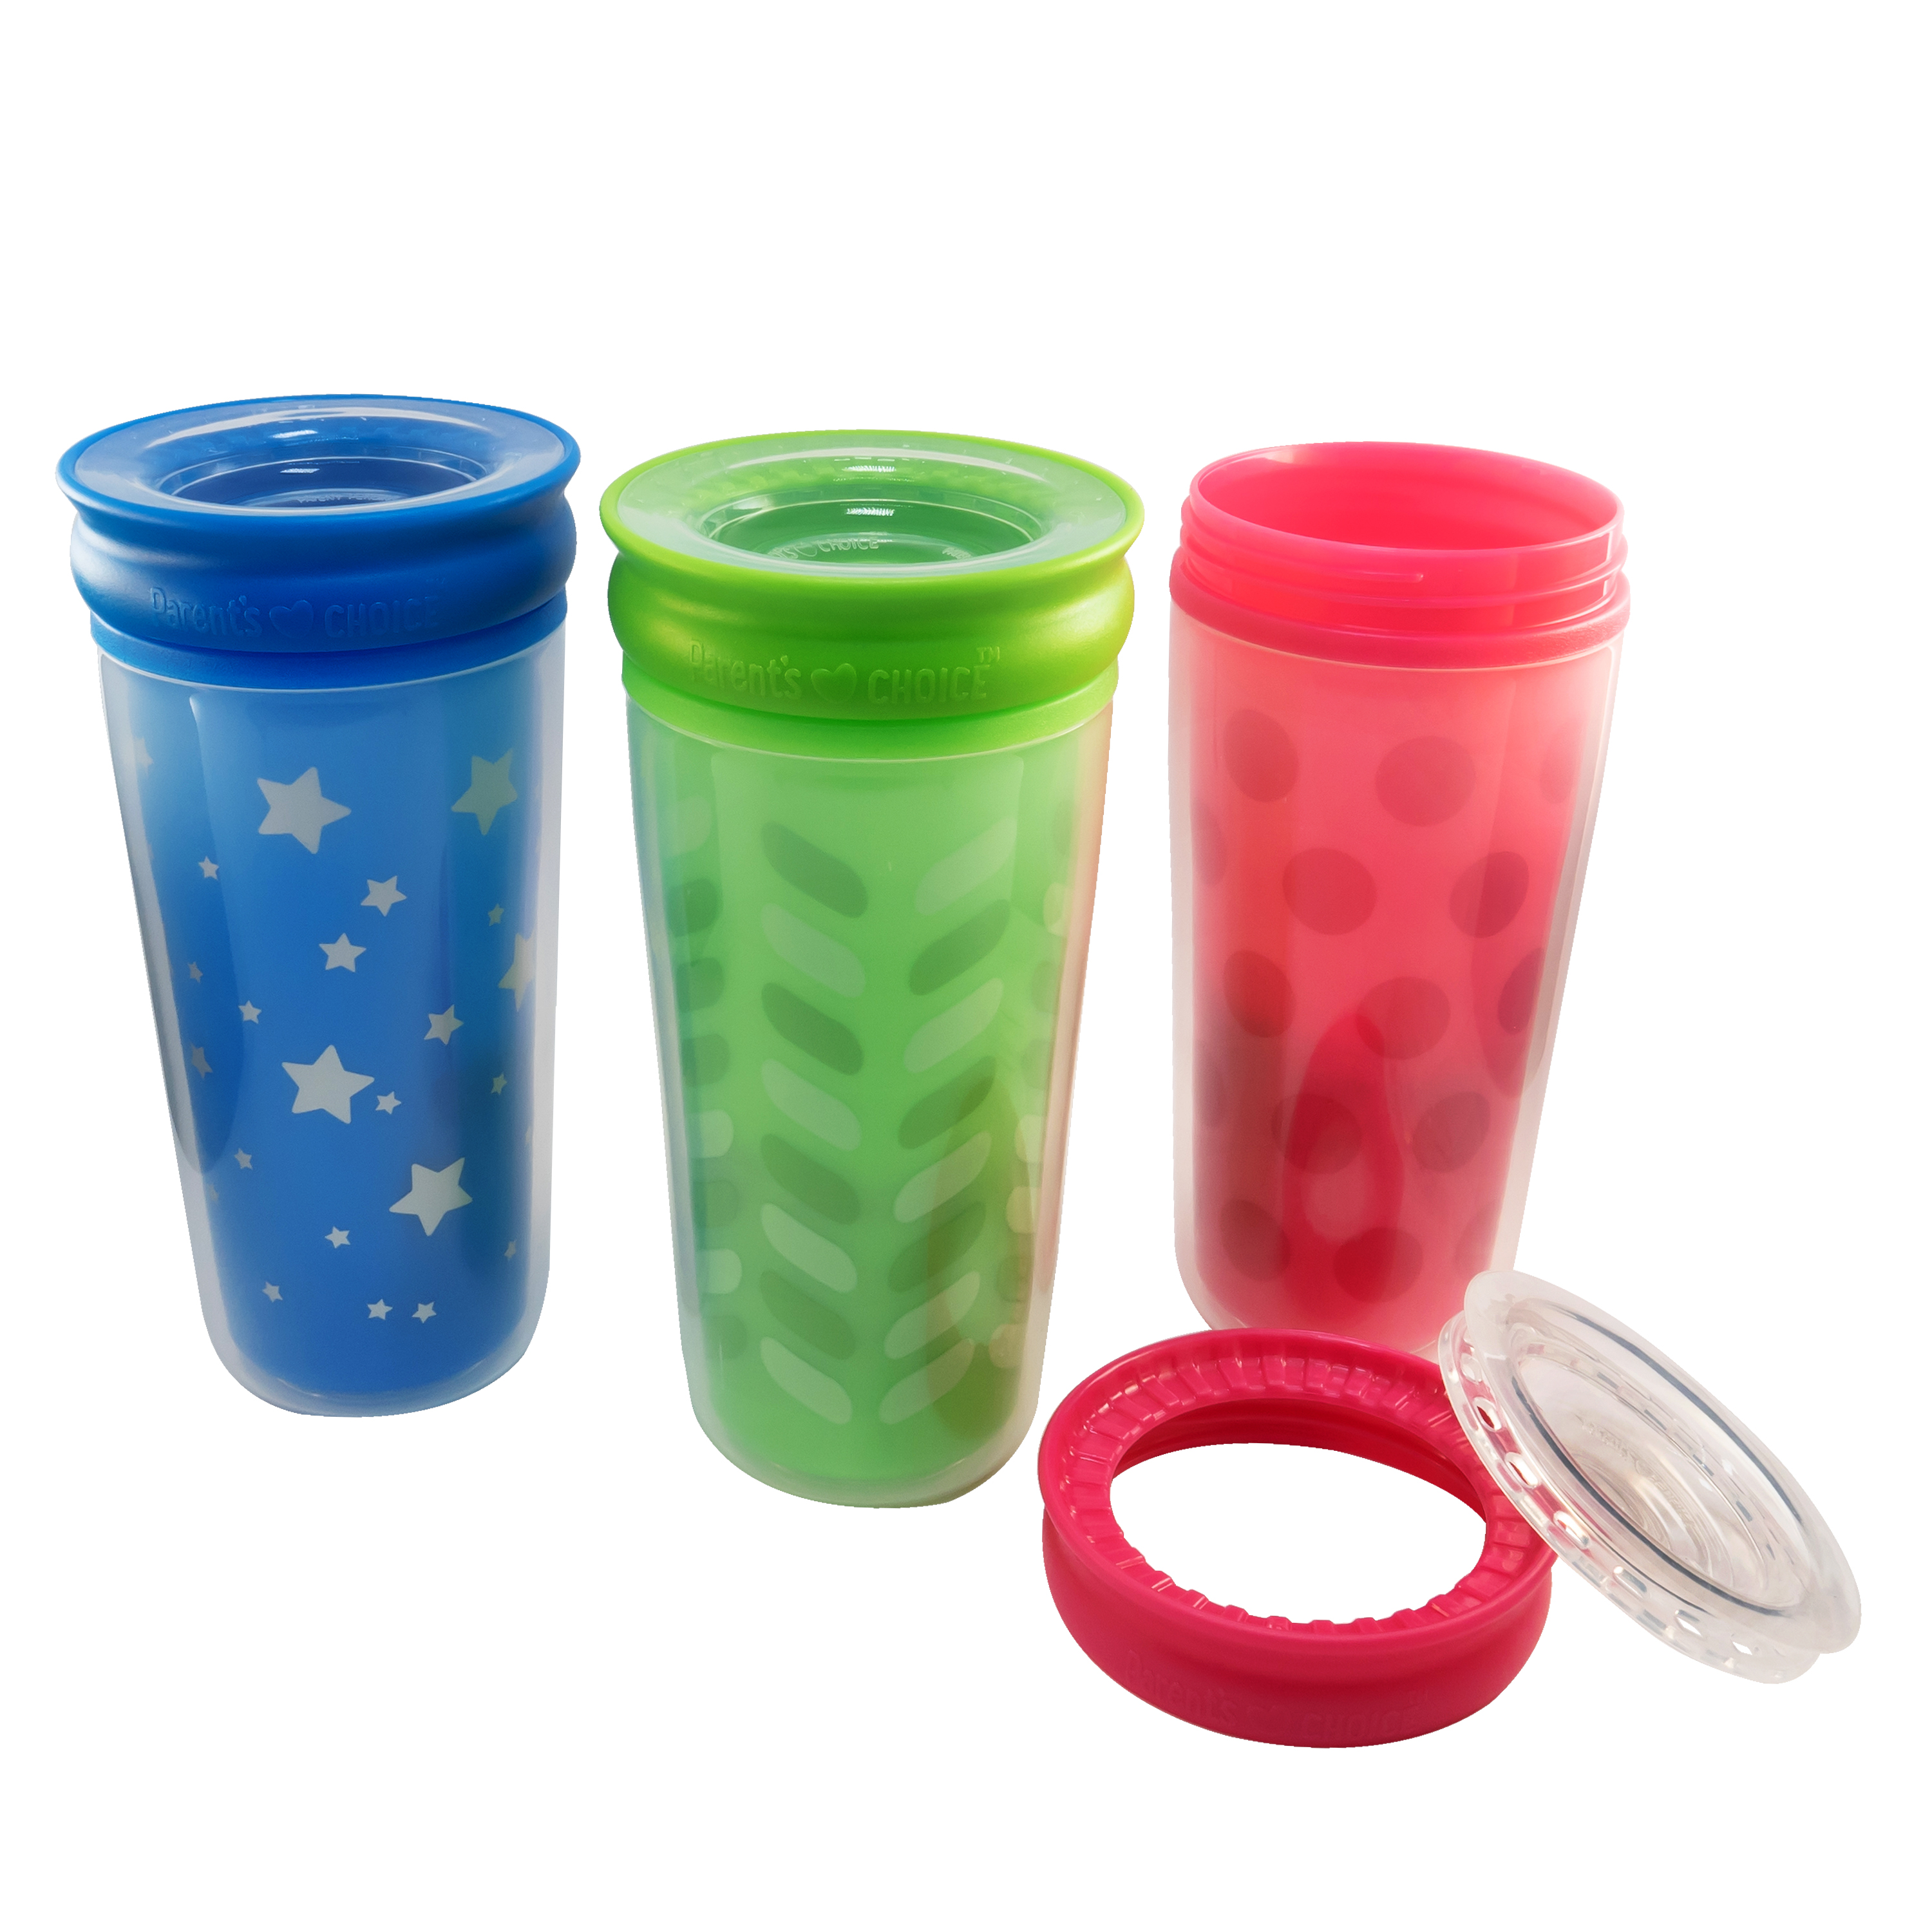 Parent's Choice 360° Insulated Sippy Cup, 12+ Months, 1 Pack